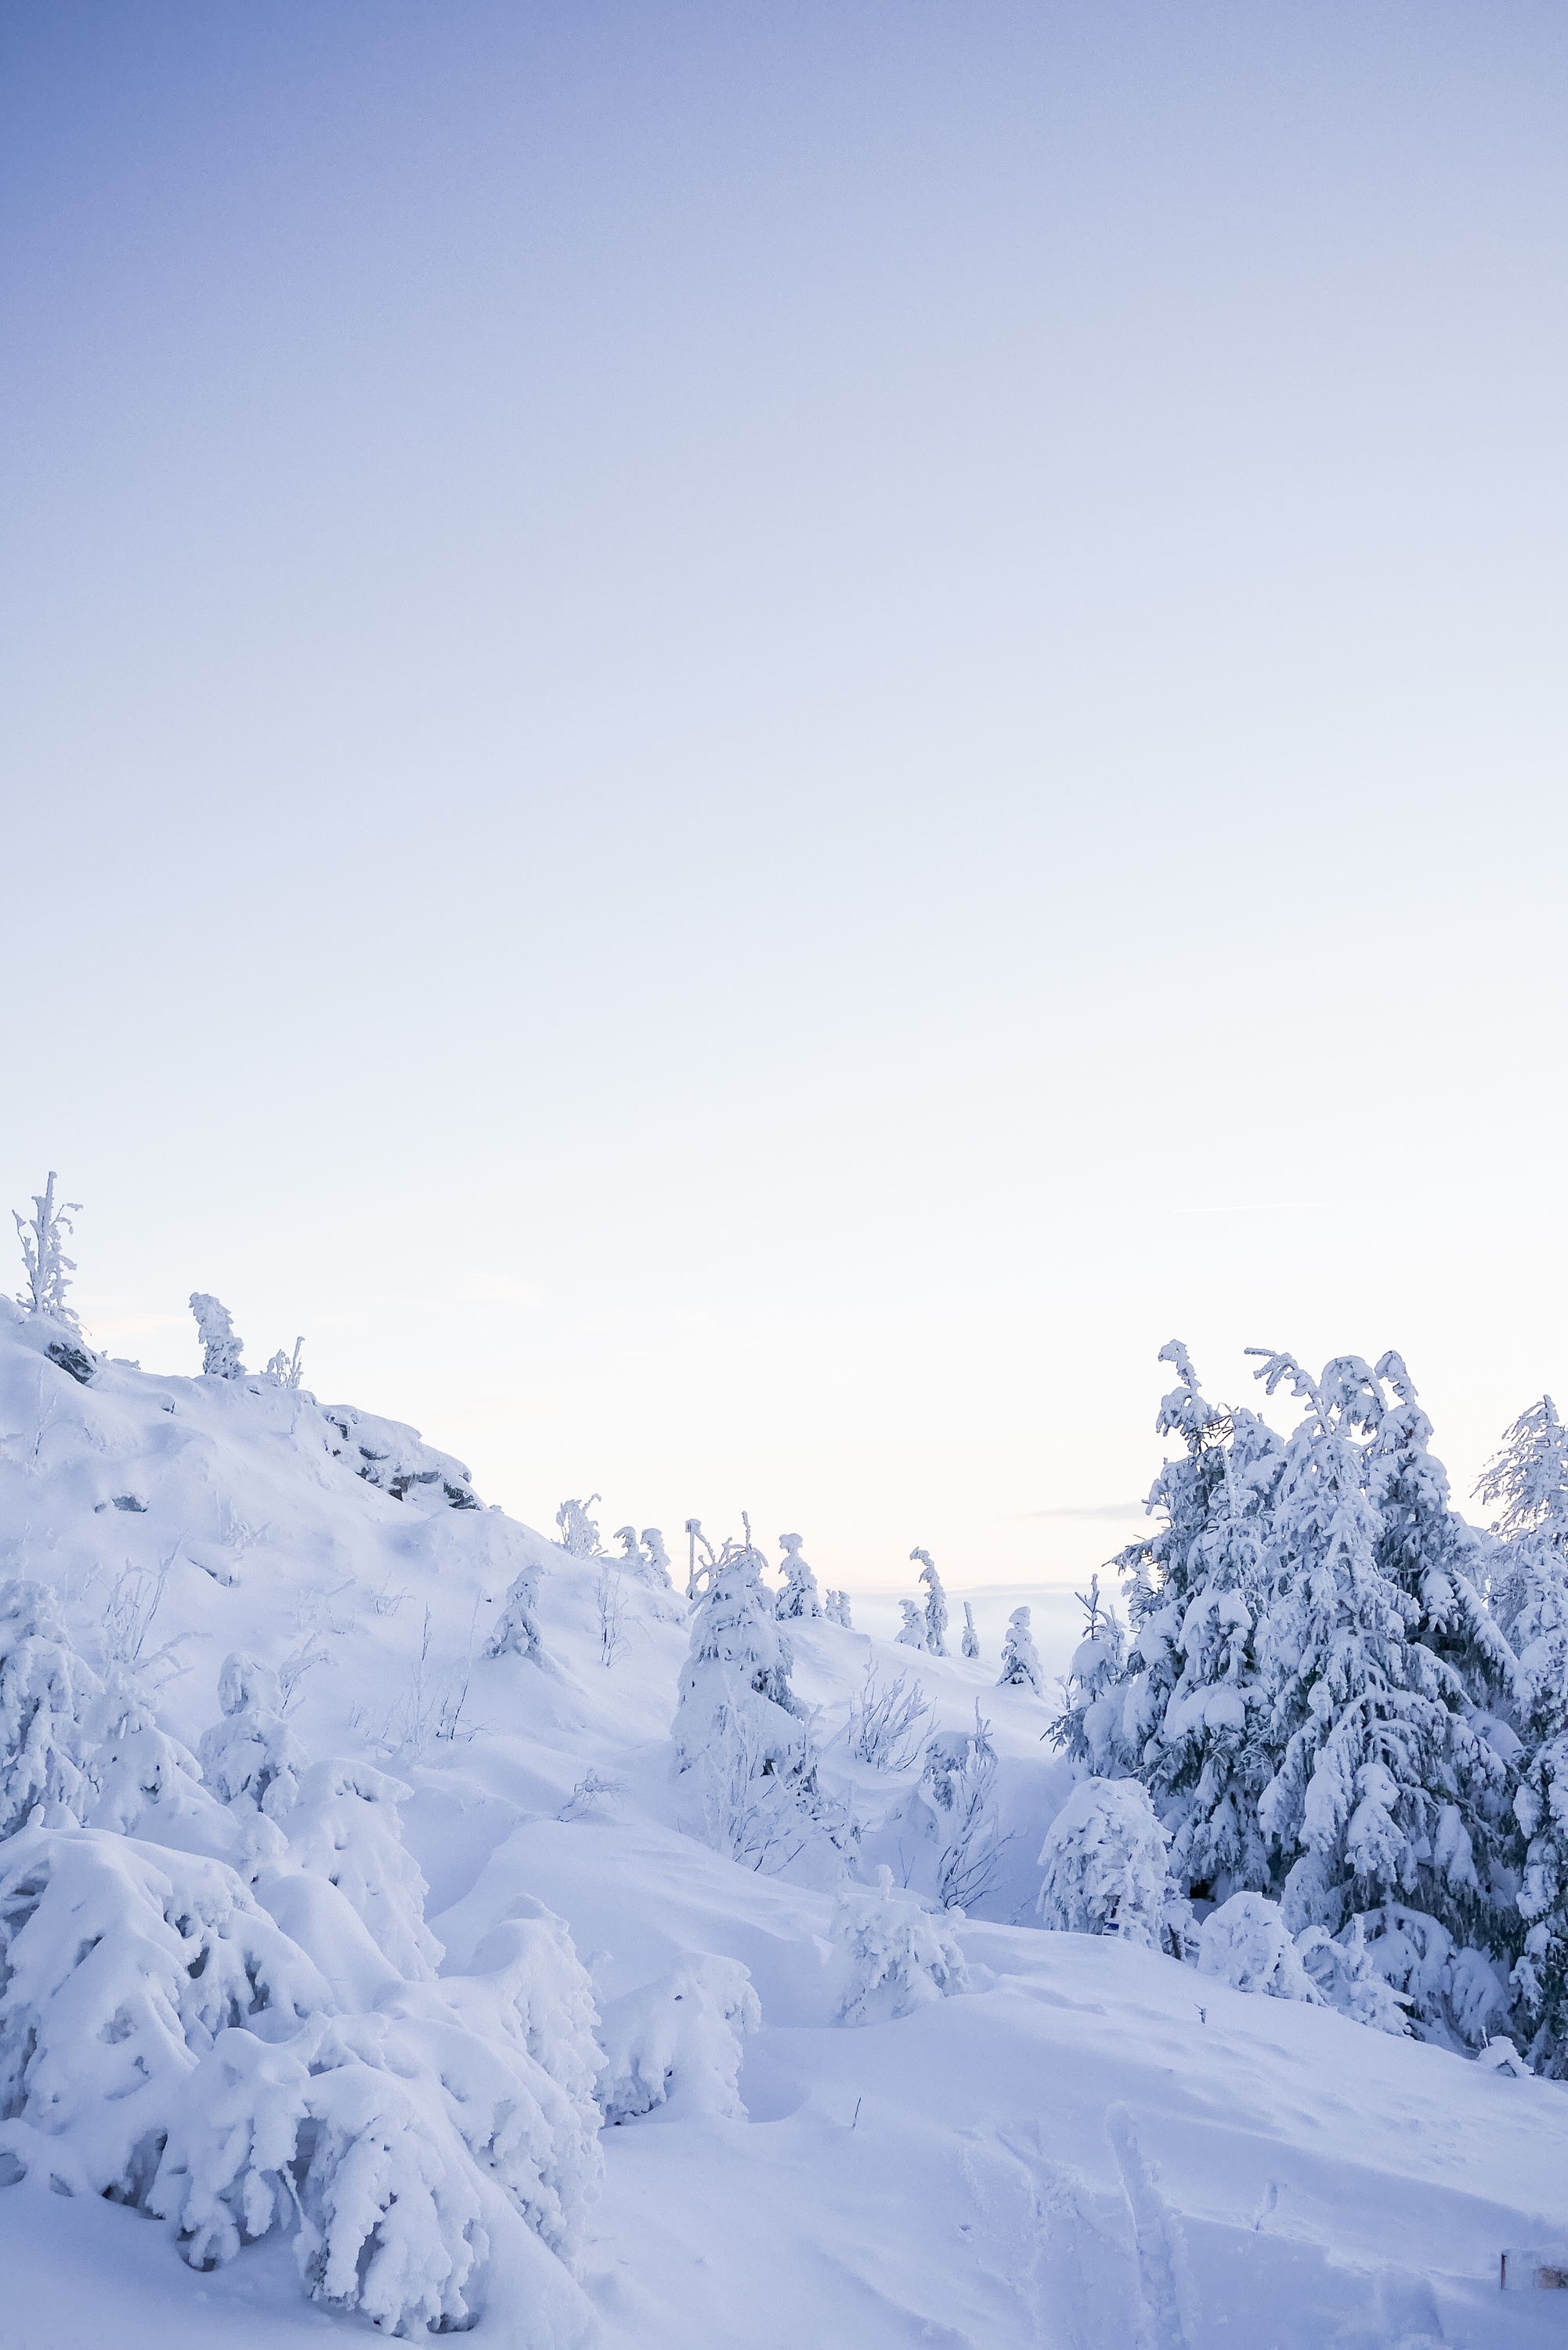 Snow Covered Landscape Free Stock Photo